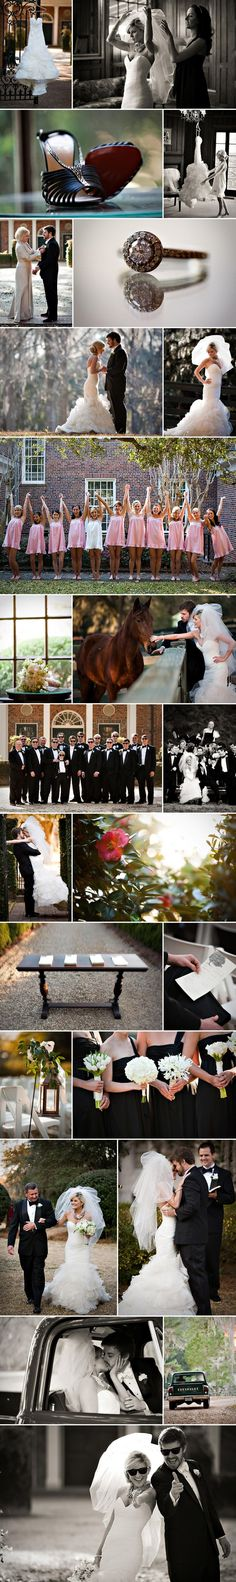 I like the styling of this weddding so much. Very classy. Southern Wedding of the Week « Southern Weddings Magazine